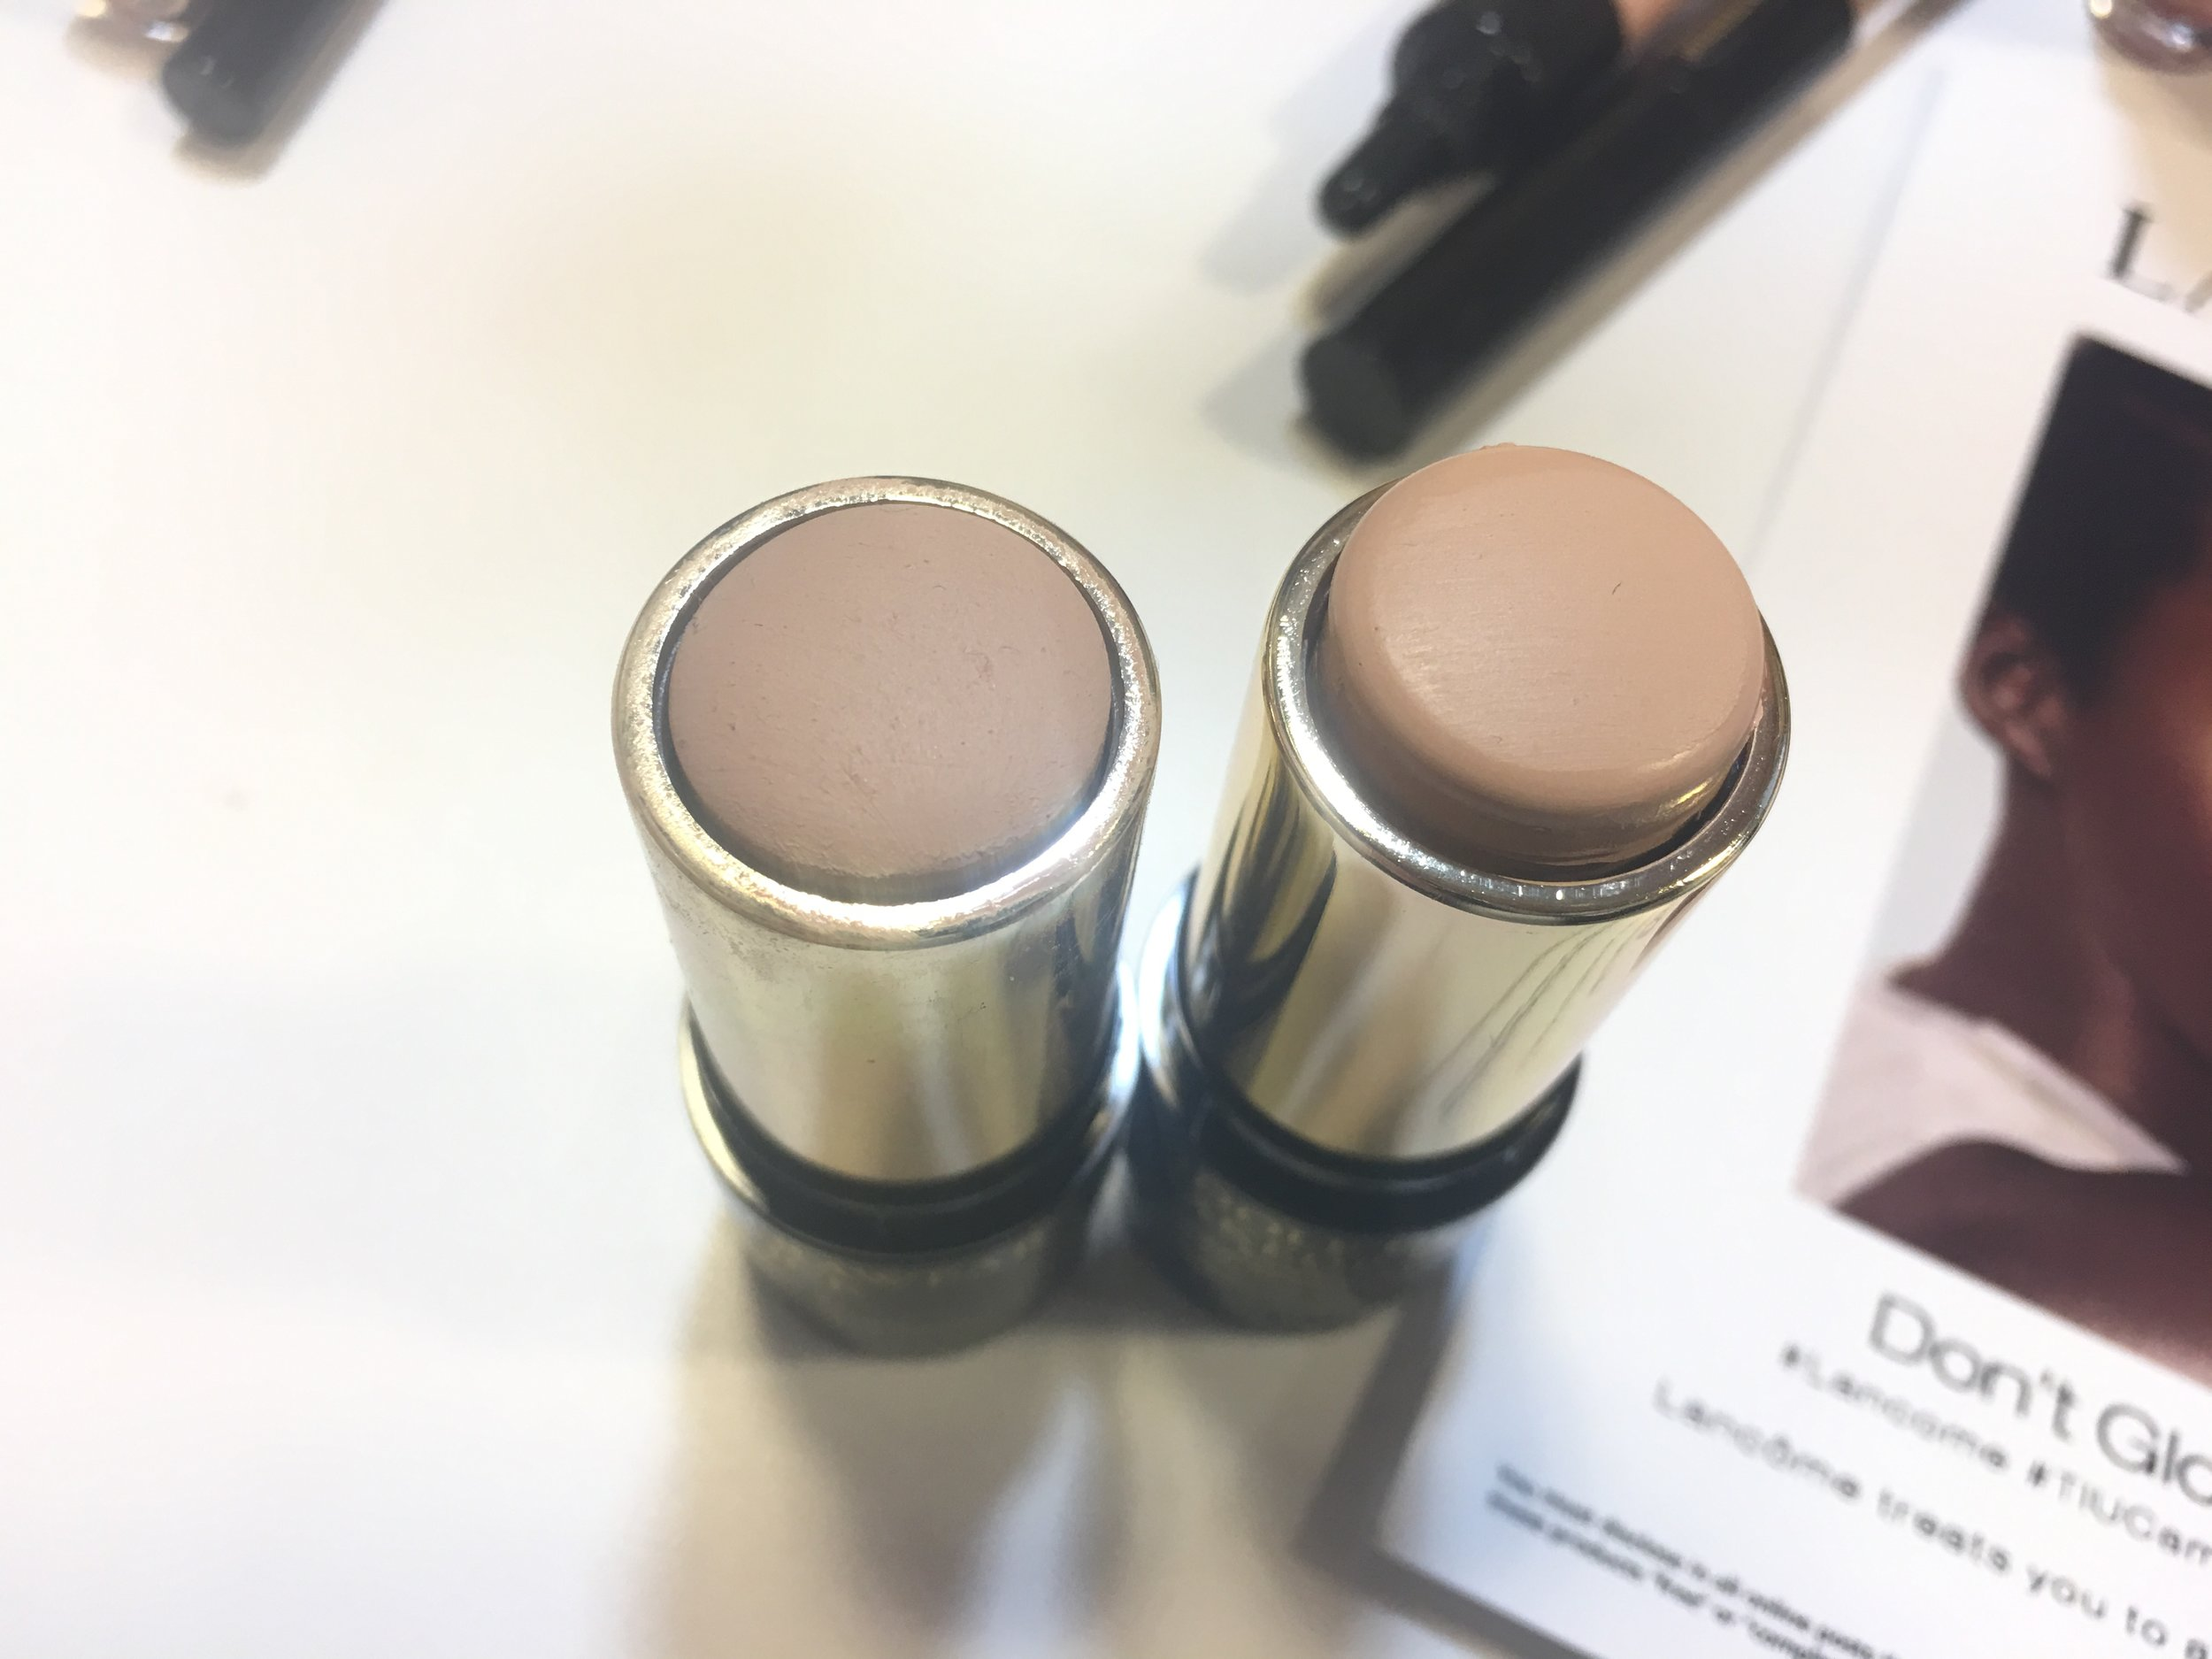 'my' shade (110) on the left, the shade from the box (140) on the right